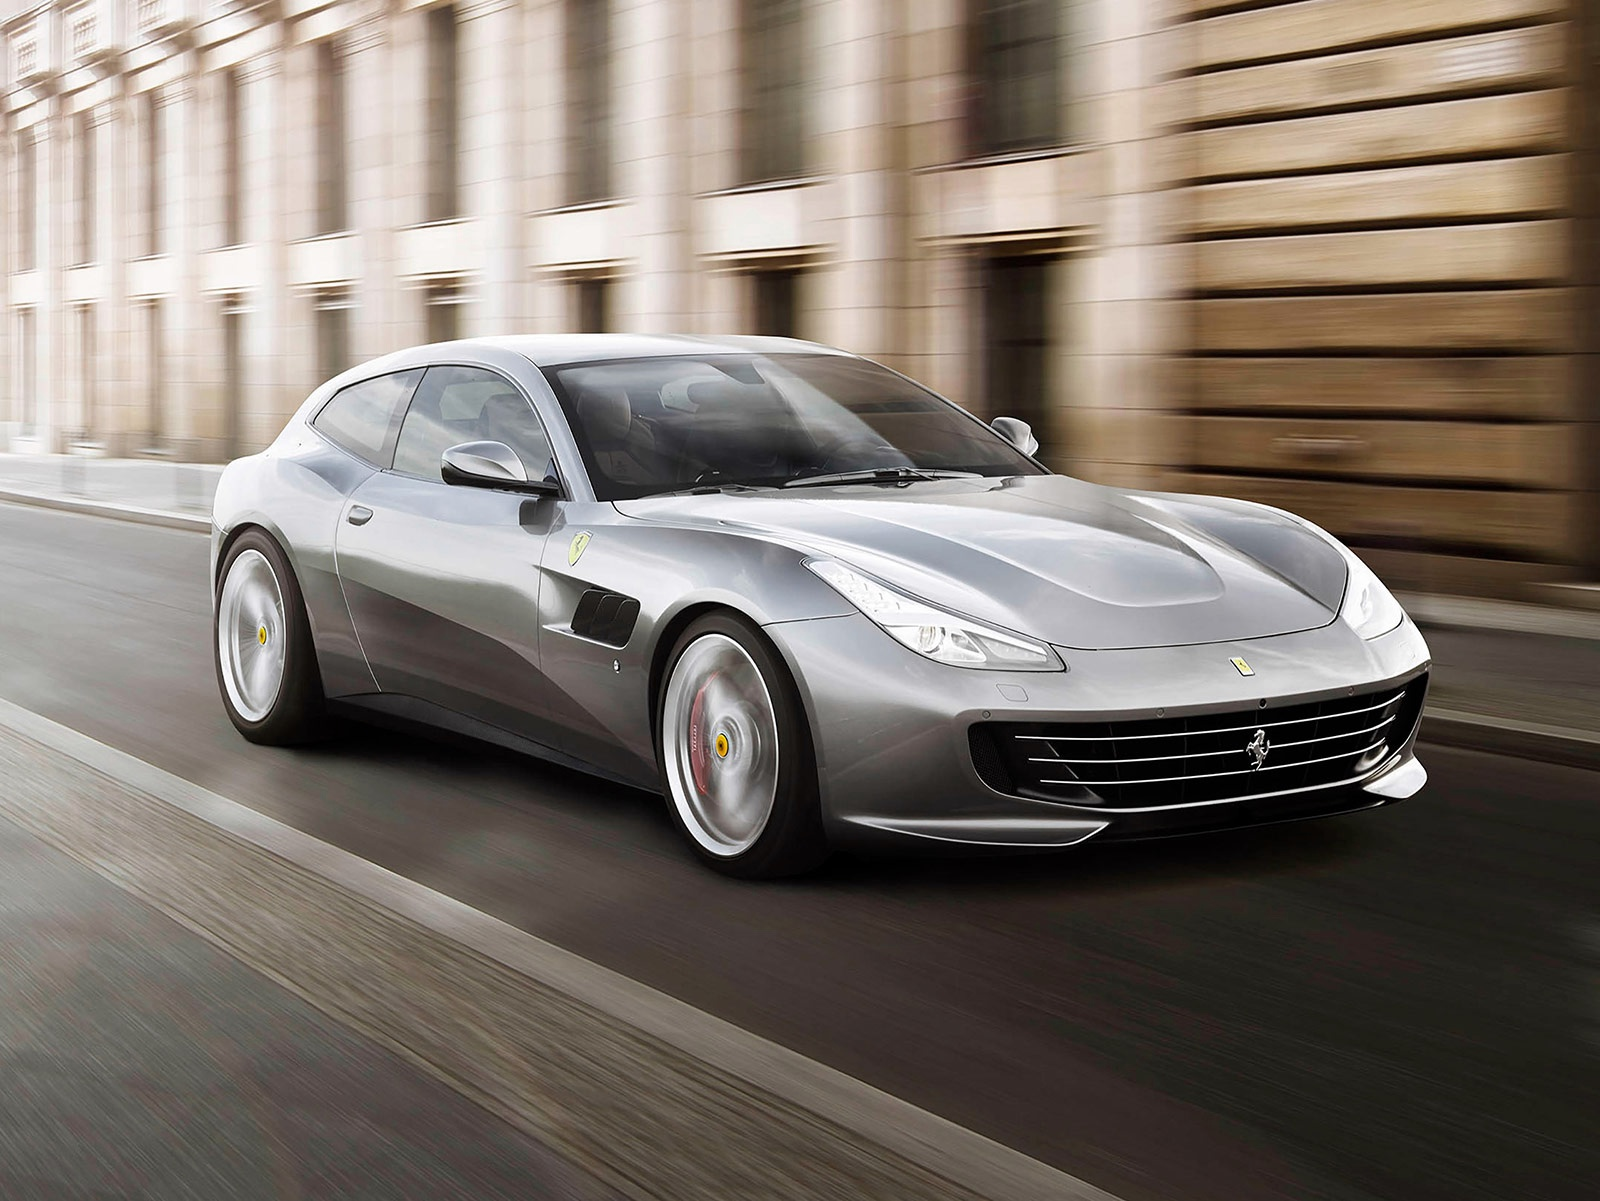 New 2019 Ferrari GTC4LUSSO T  For Sale In Westport, CT 232_p3